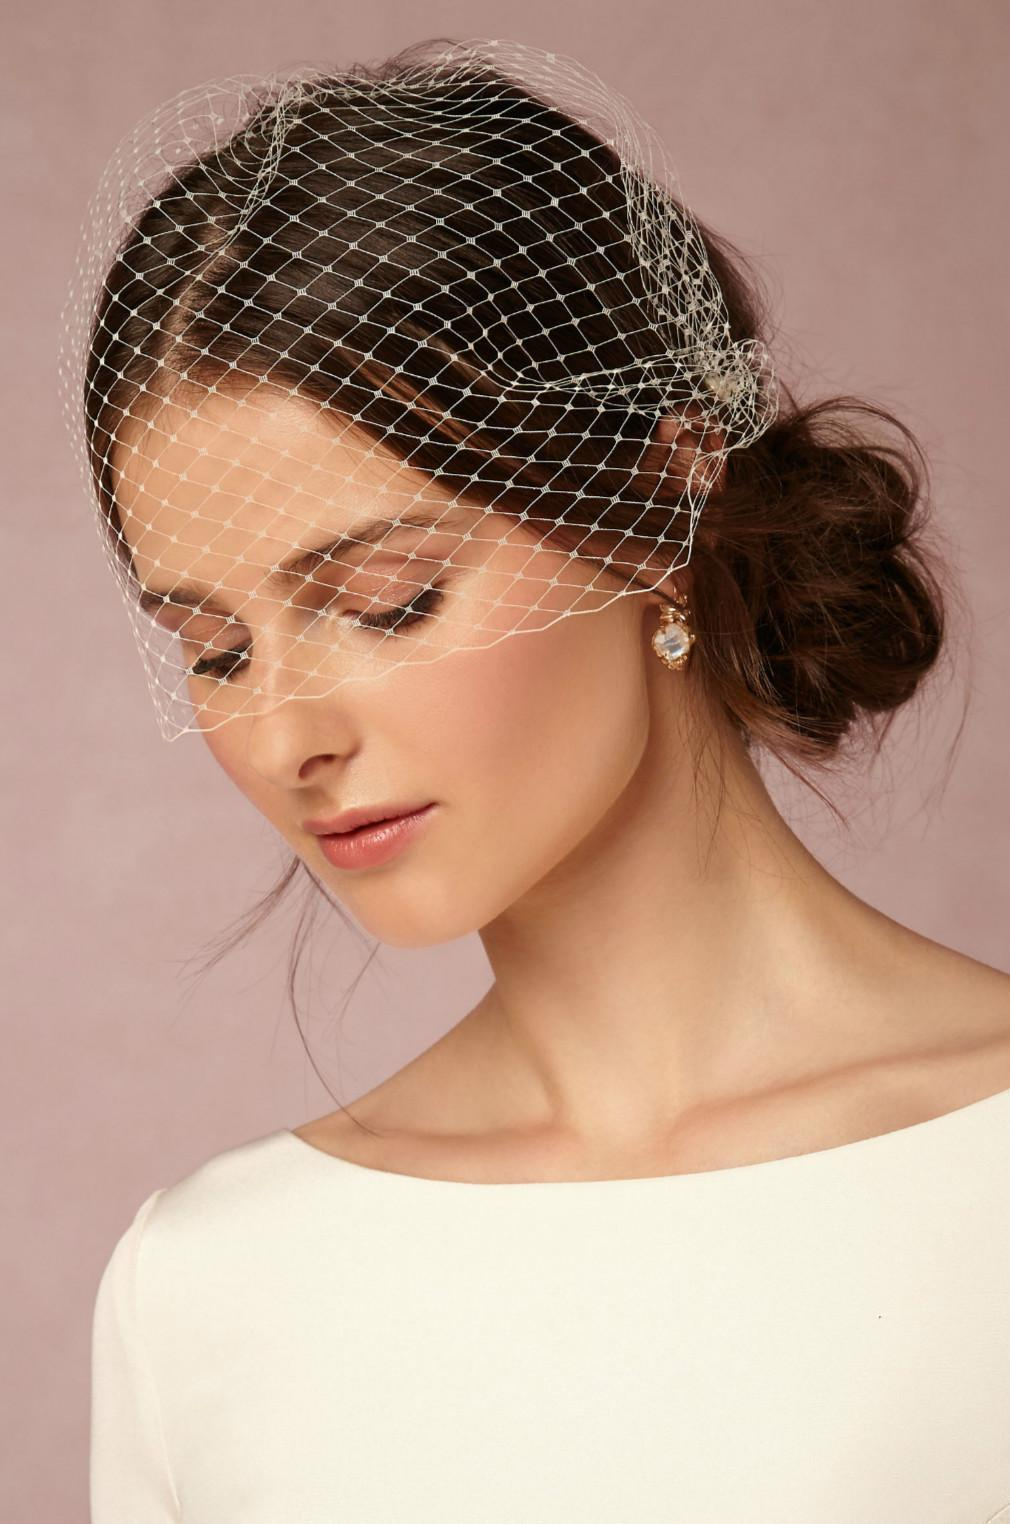 New Cheap Wedding Veils Birdcage Modern Bridal Veil WITH Comb Elegant White Ivory Short